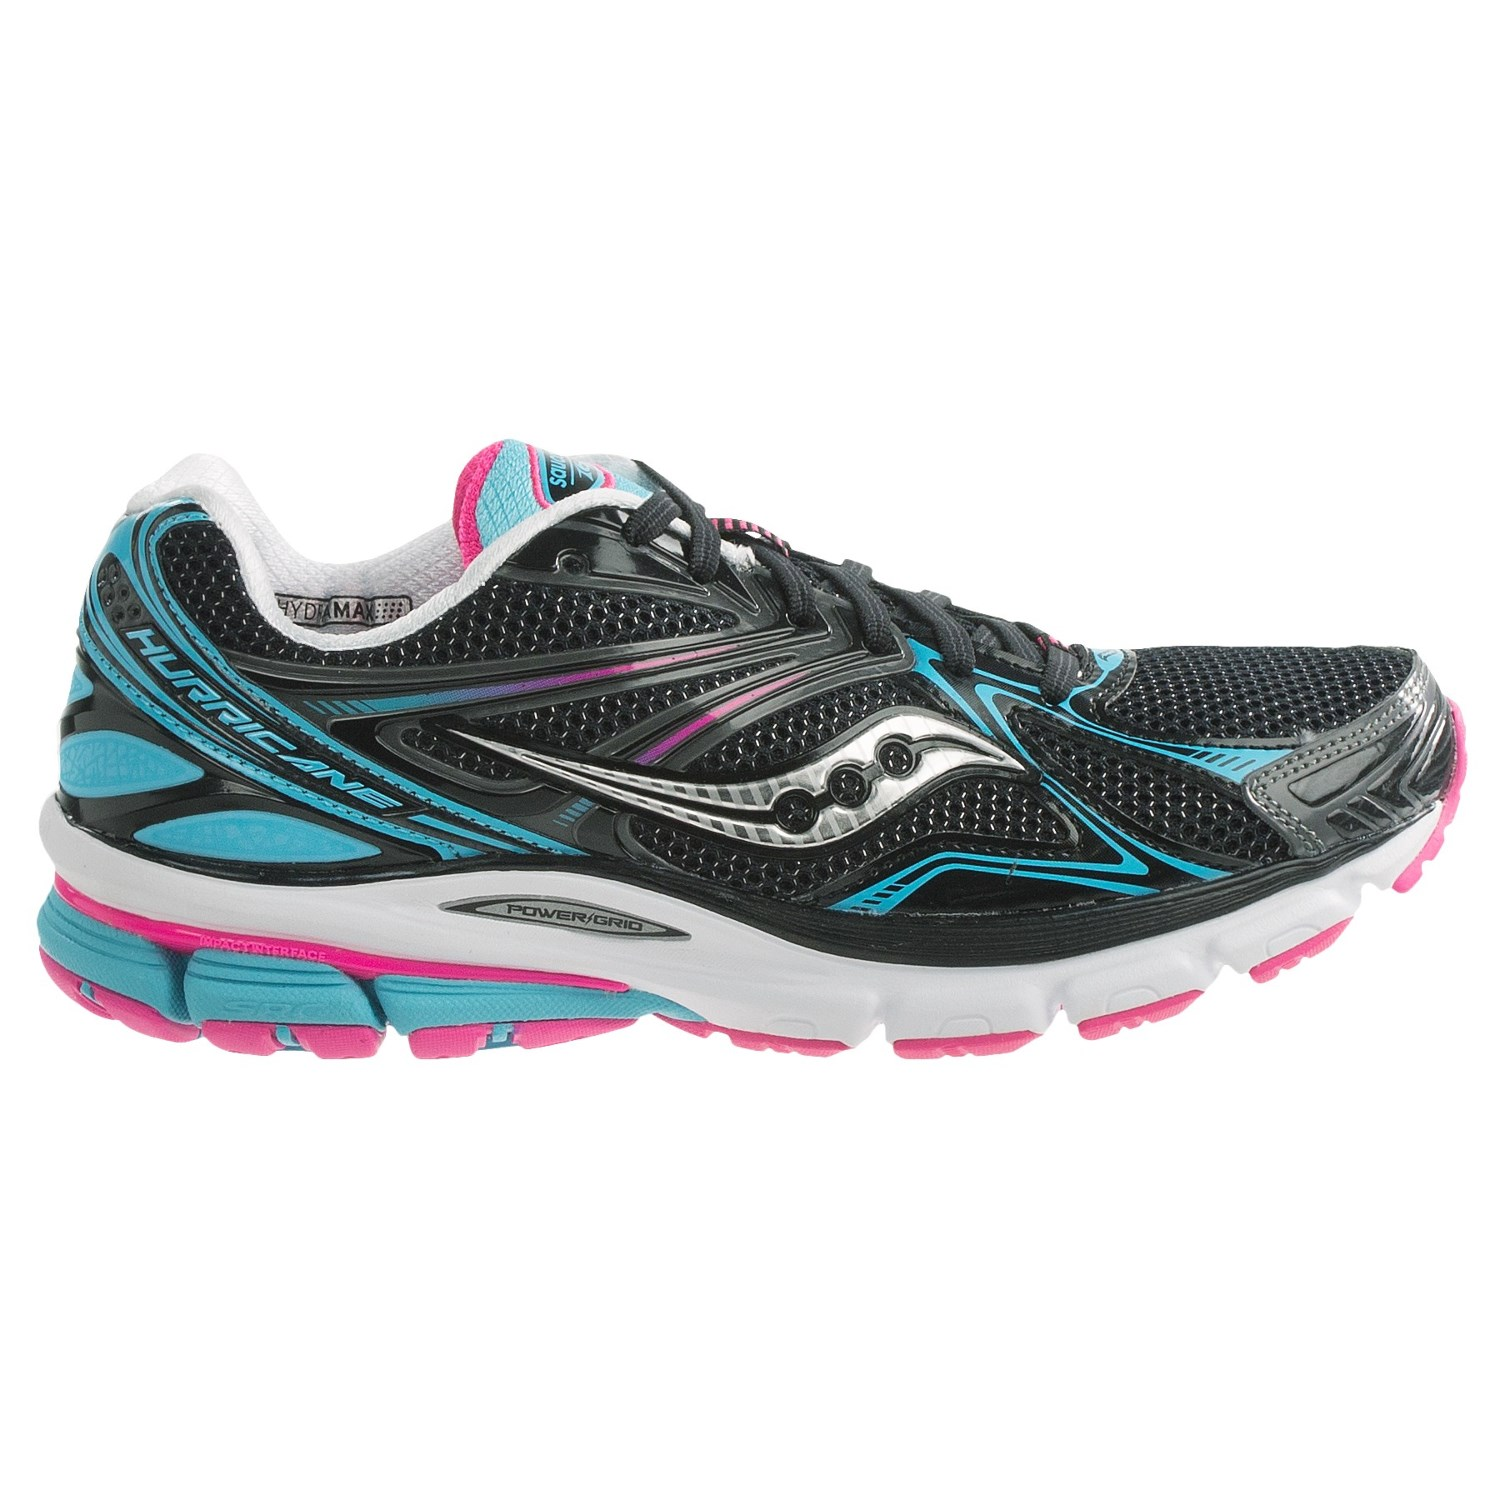 Stabilizing Running Shoes